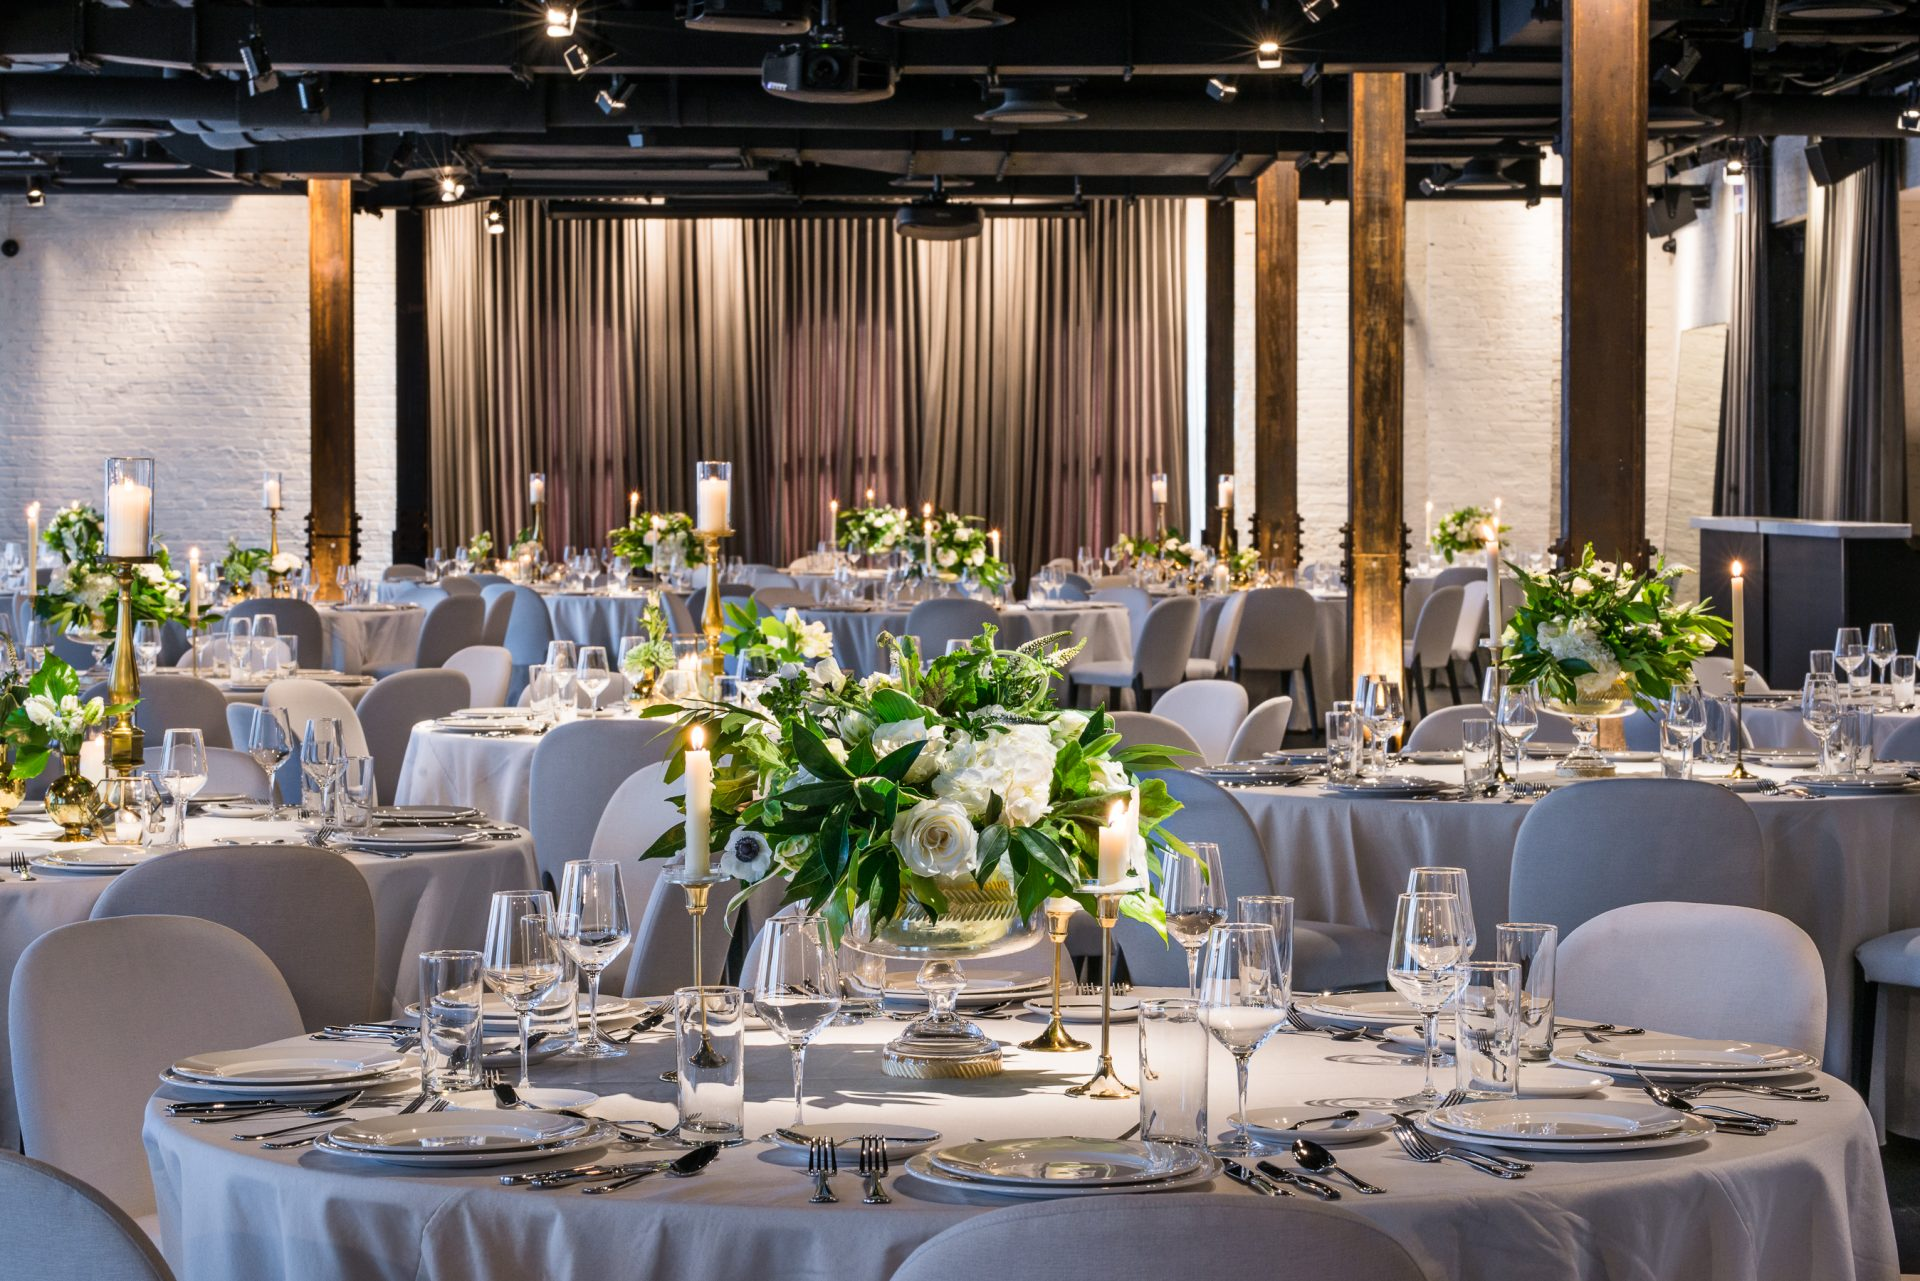 Dalcy event hall. Multiple tables set with plates, glasses, and a bouquet of flowers in the middle.